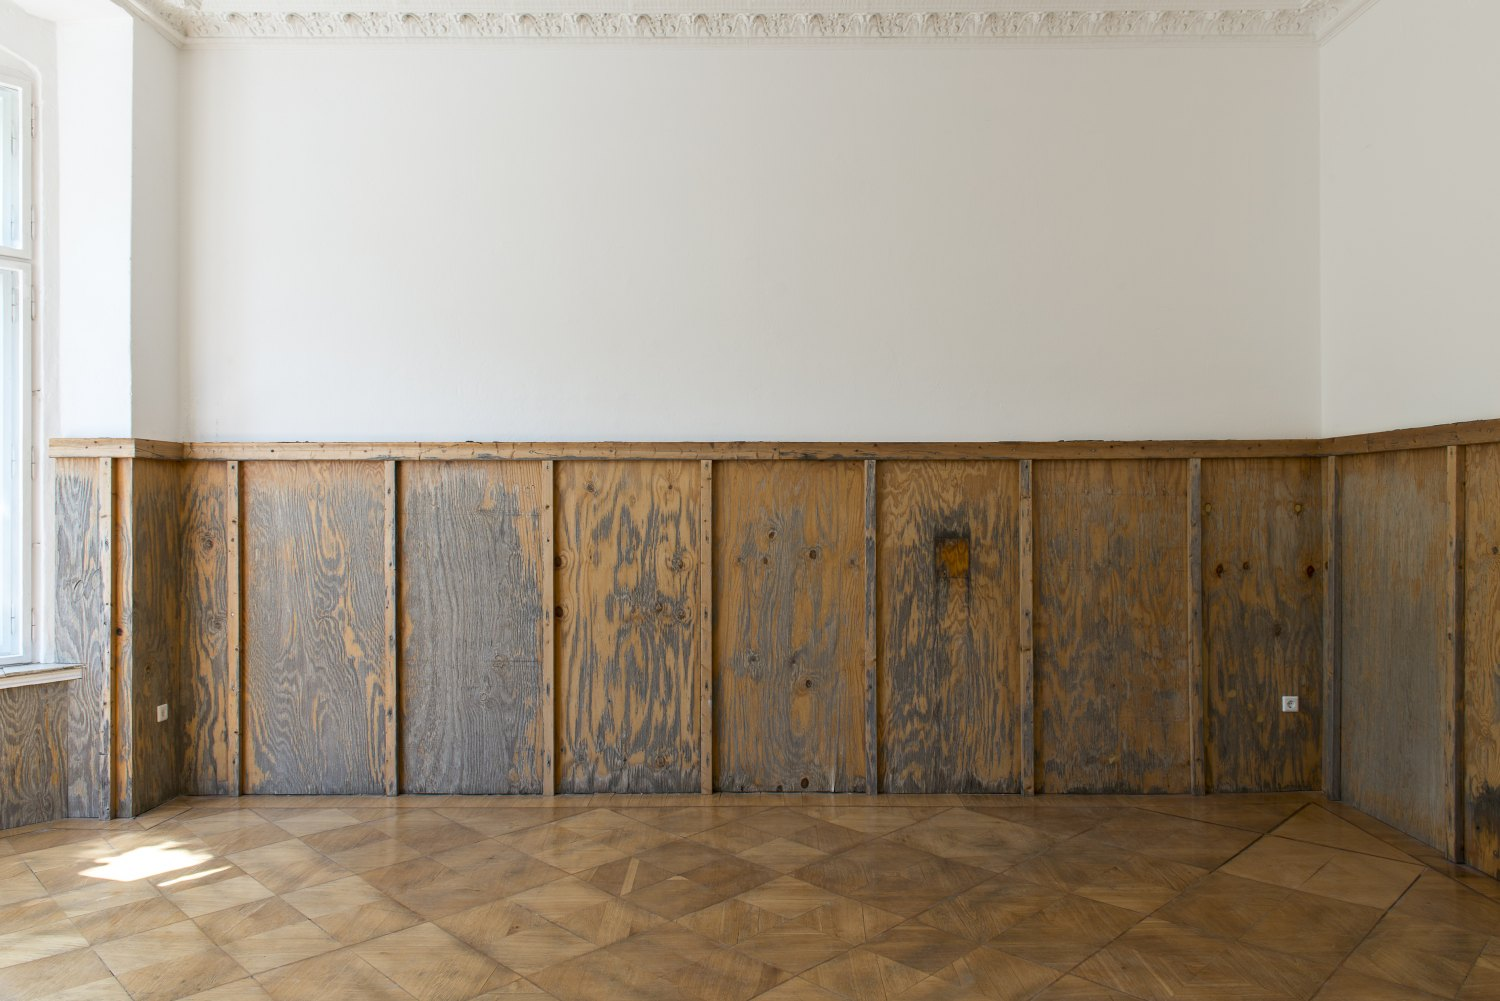 John Knight, A work in situ Galerie Neu / MD72, Berlin 2013